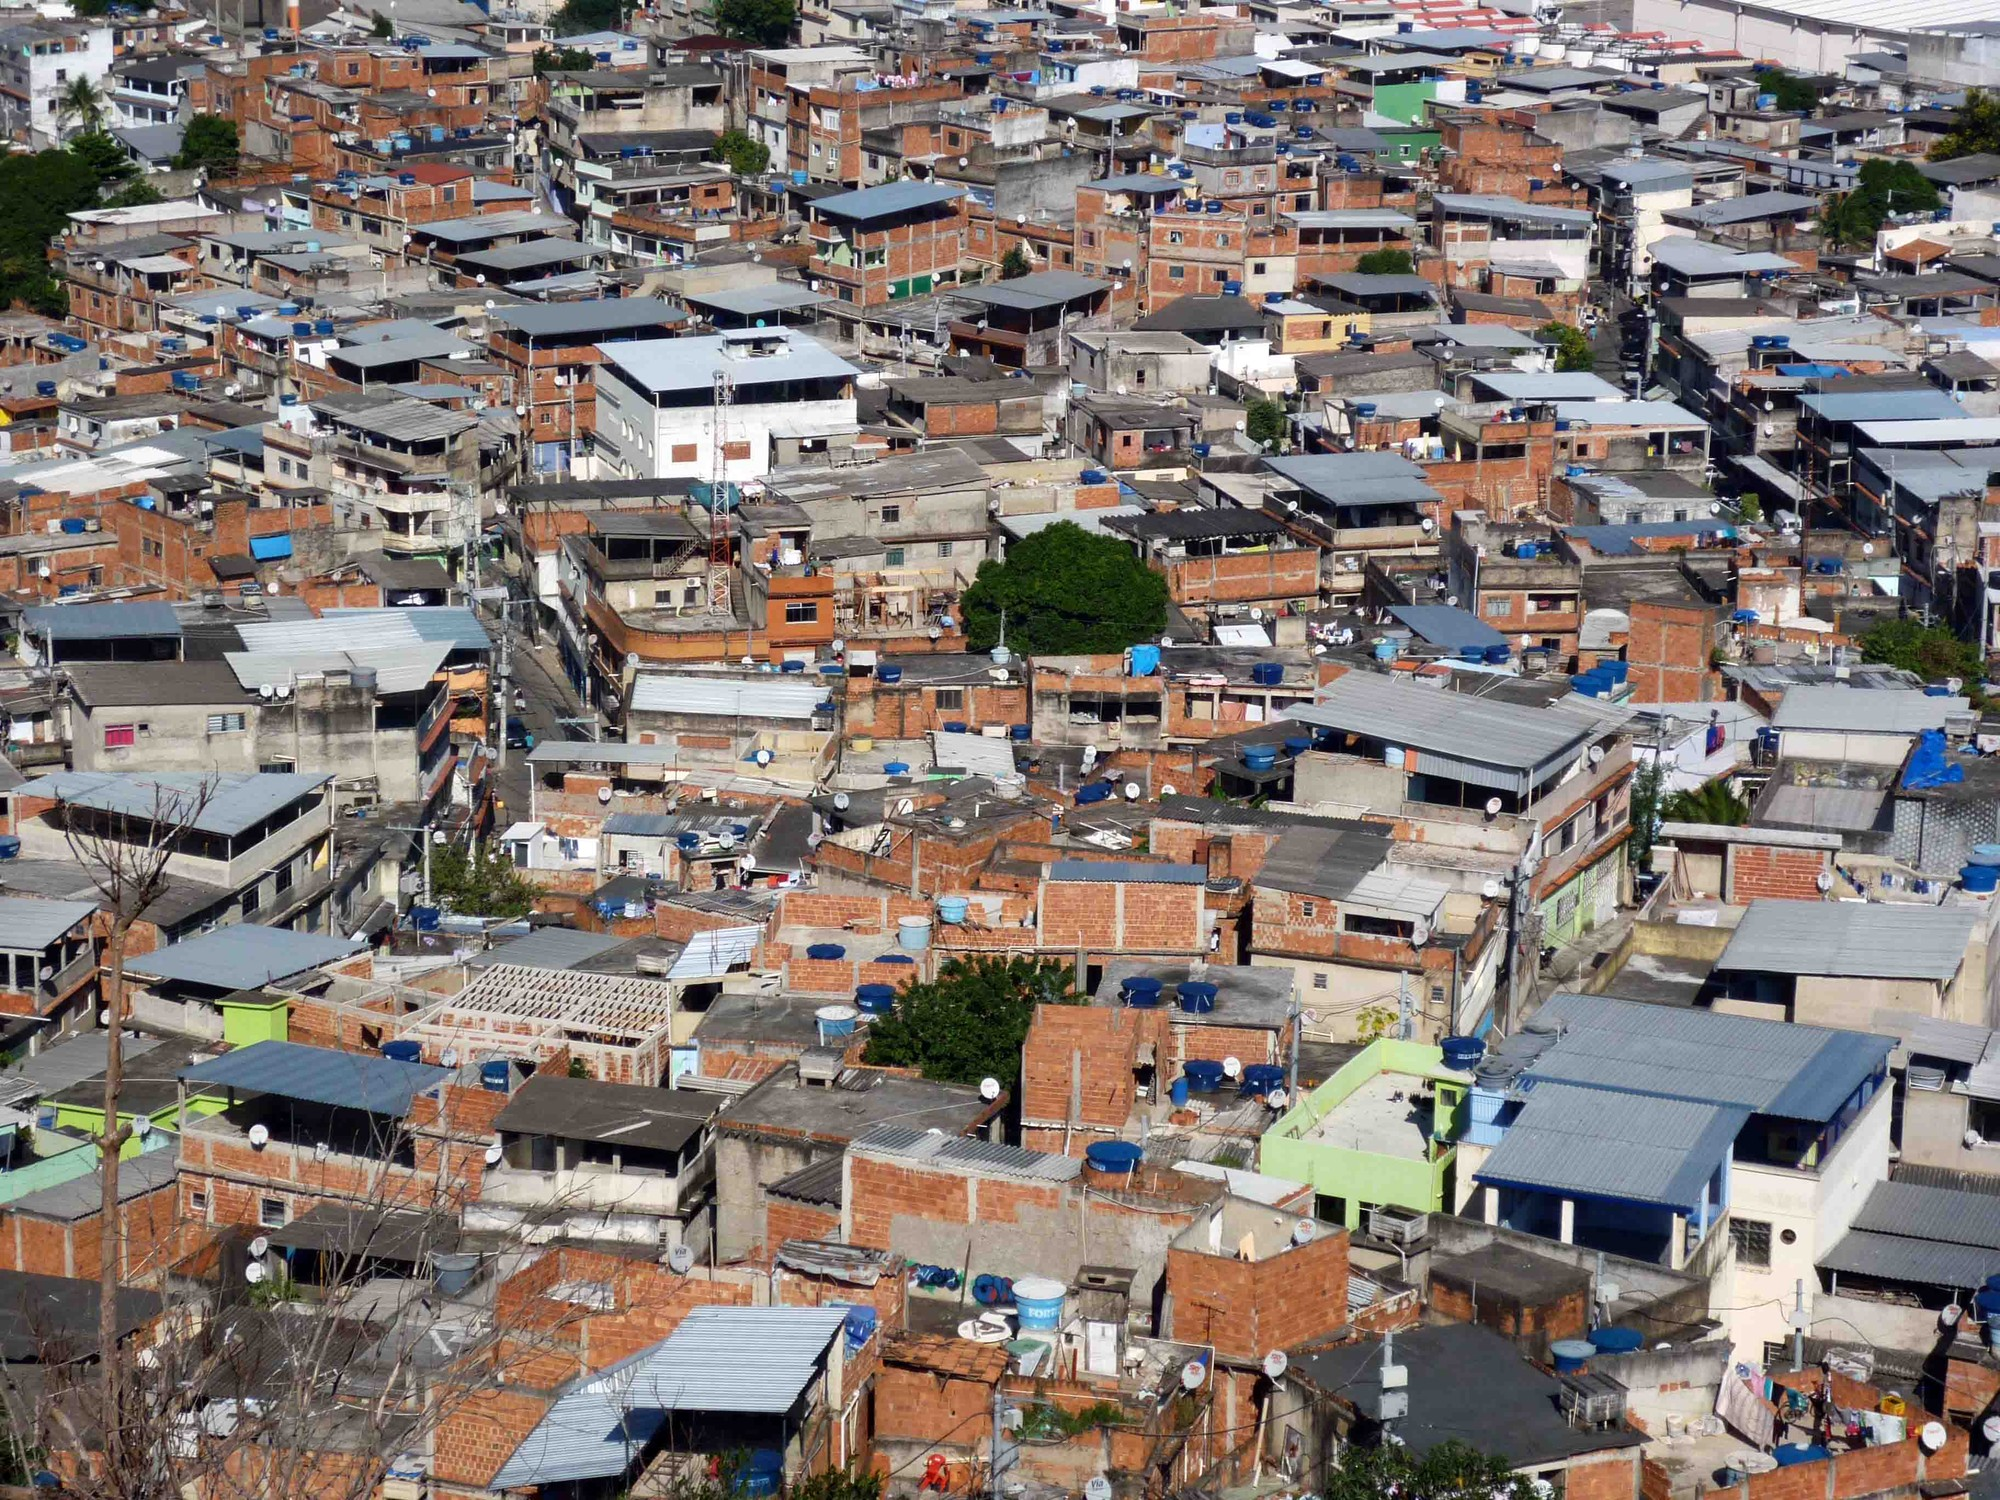 Case Study: The Unspoken Rules of Favela Construction, © Solène Veysseyre